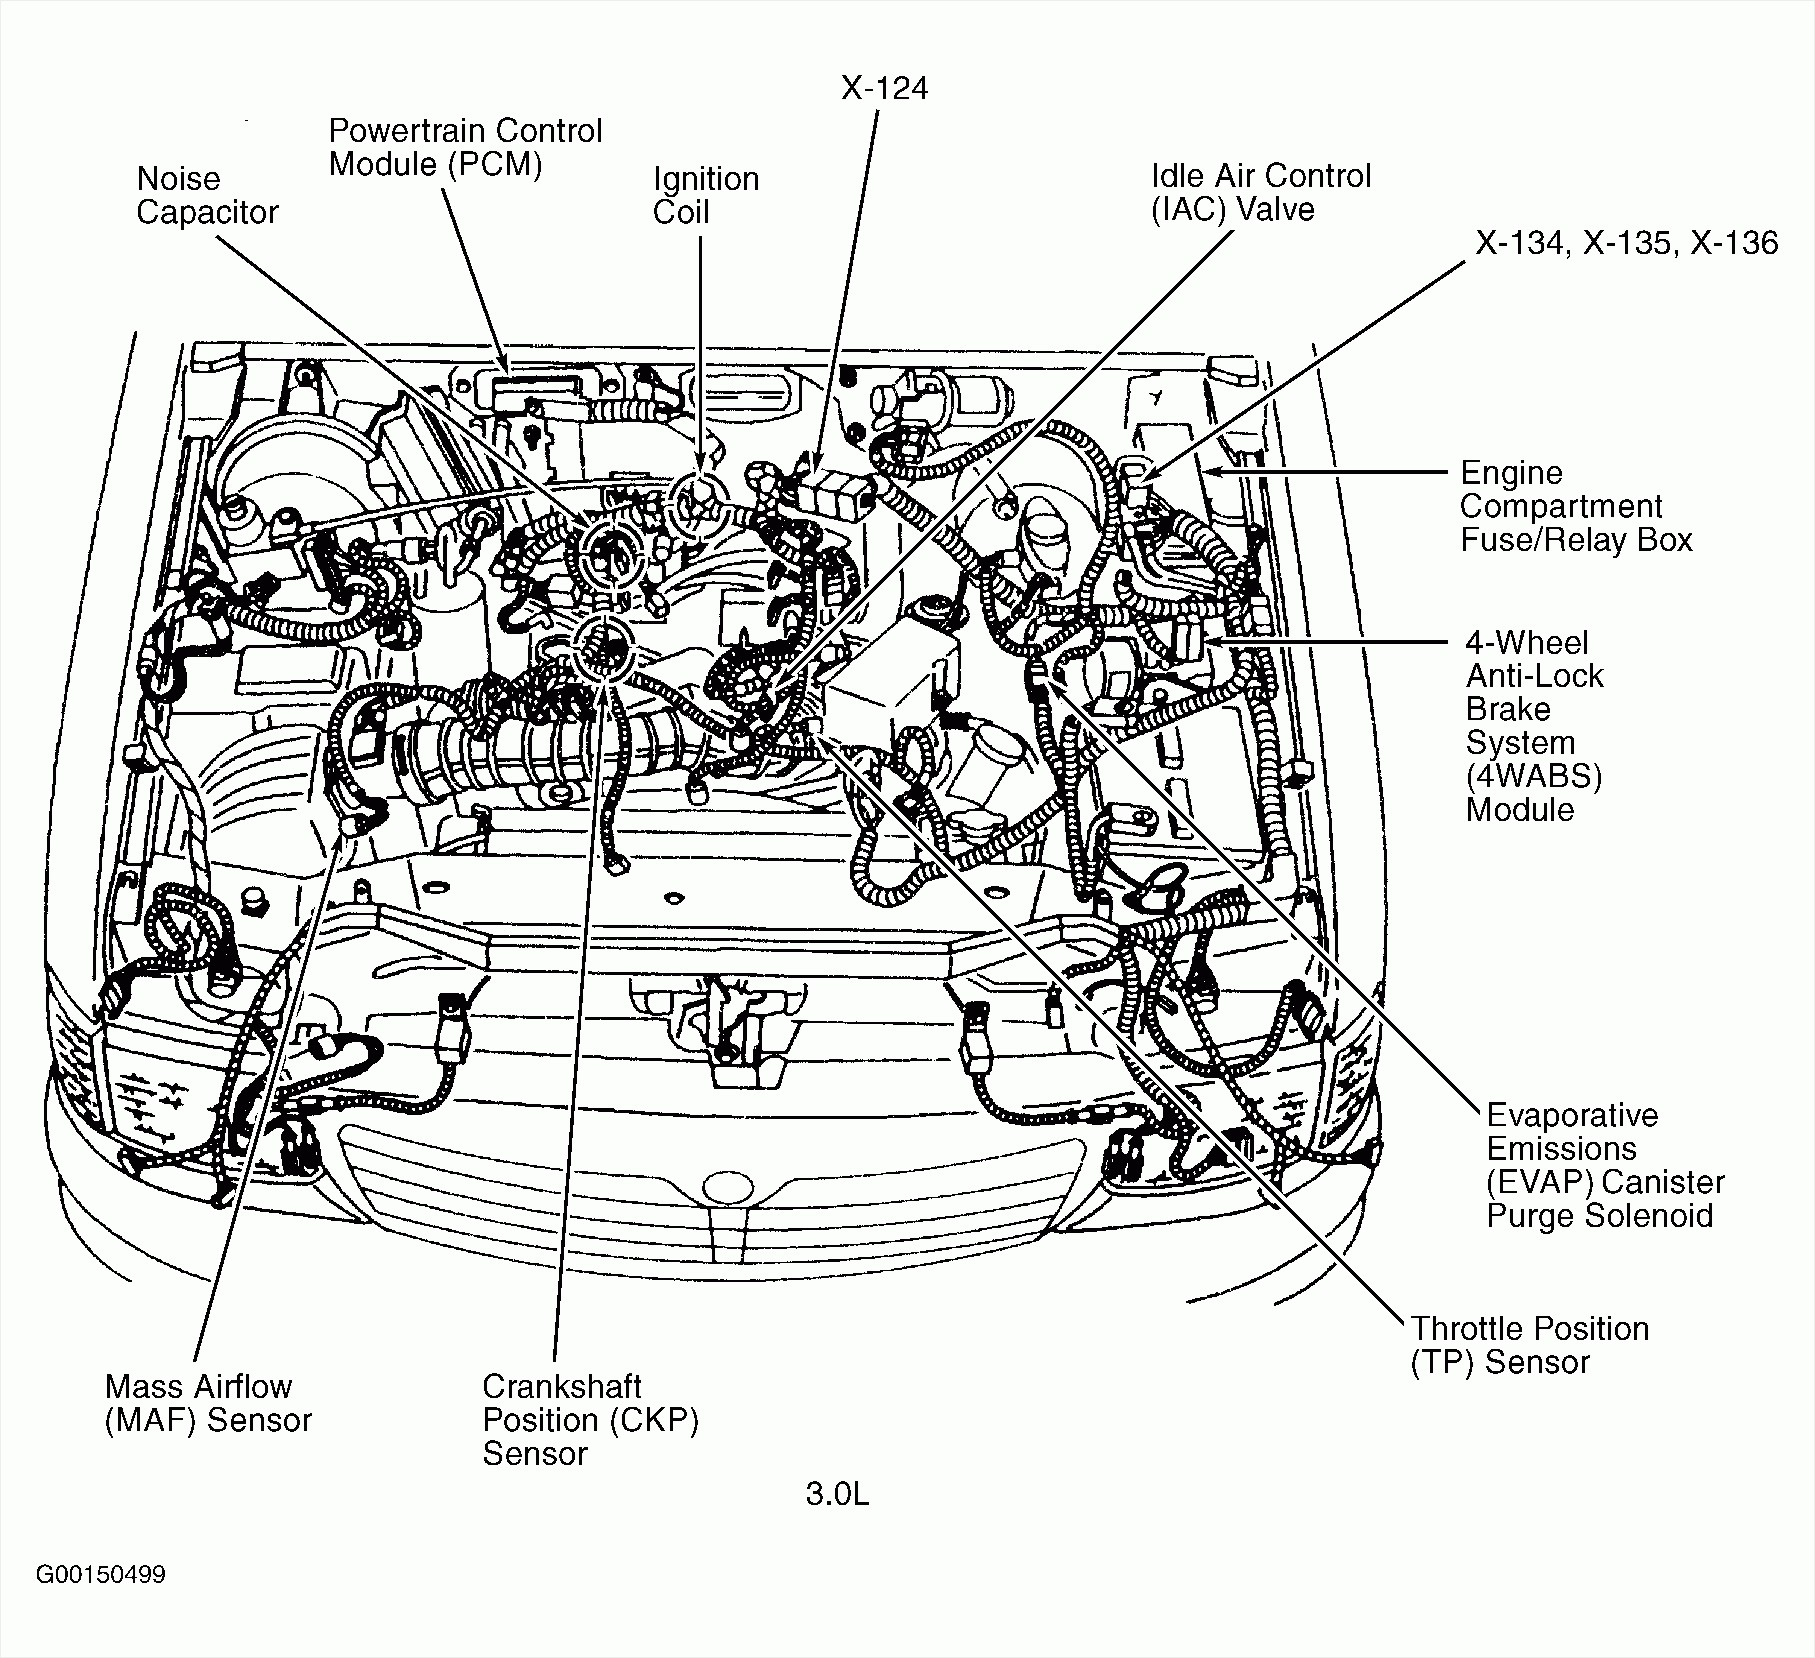 Ktm 525 Wiring Harness Engine Diagrams Ford Example Electrical Diagram 05 F250 6 0 Best Site For 2004